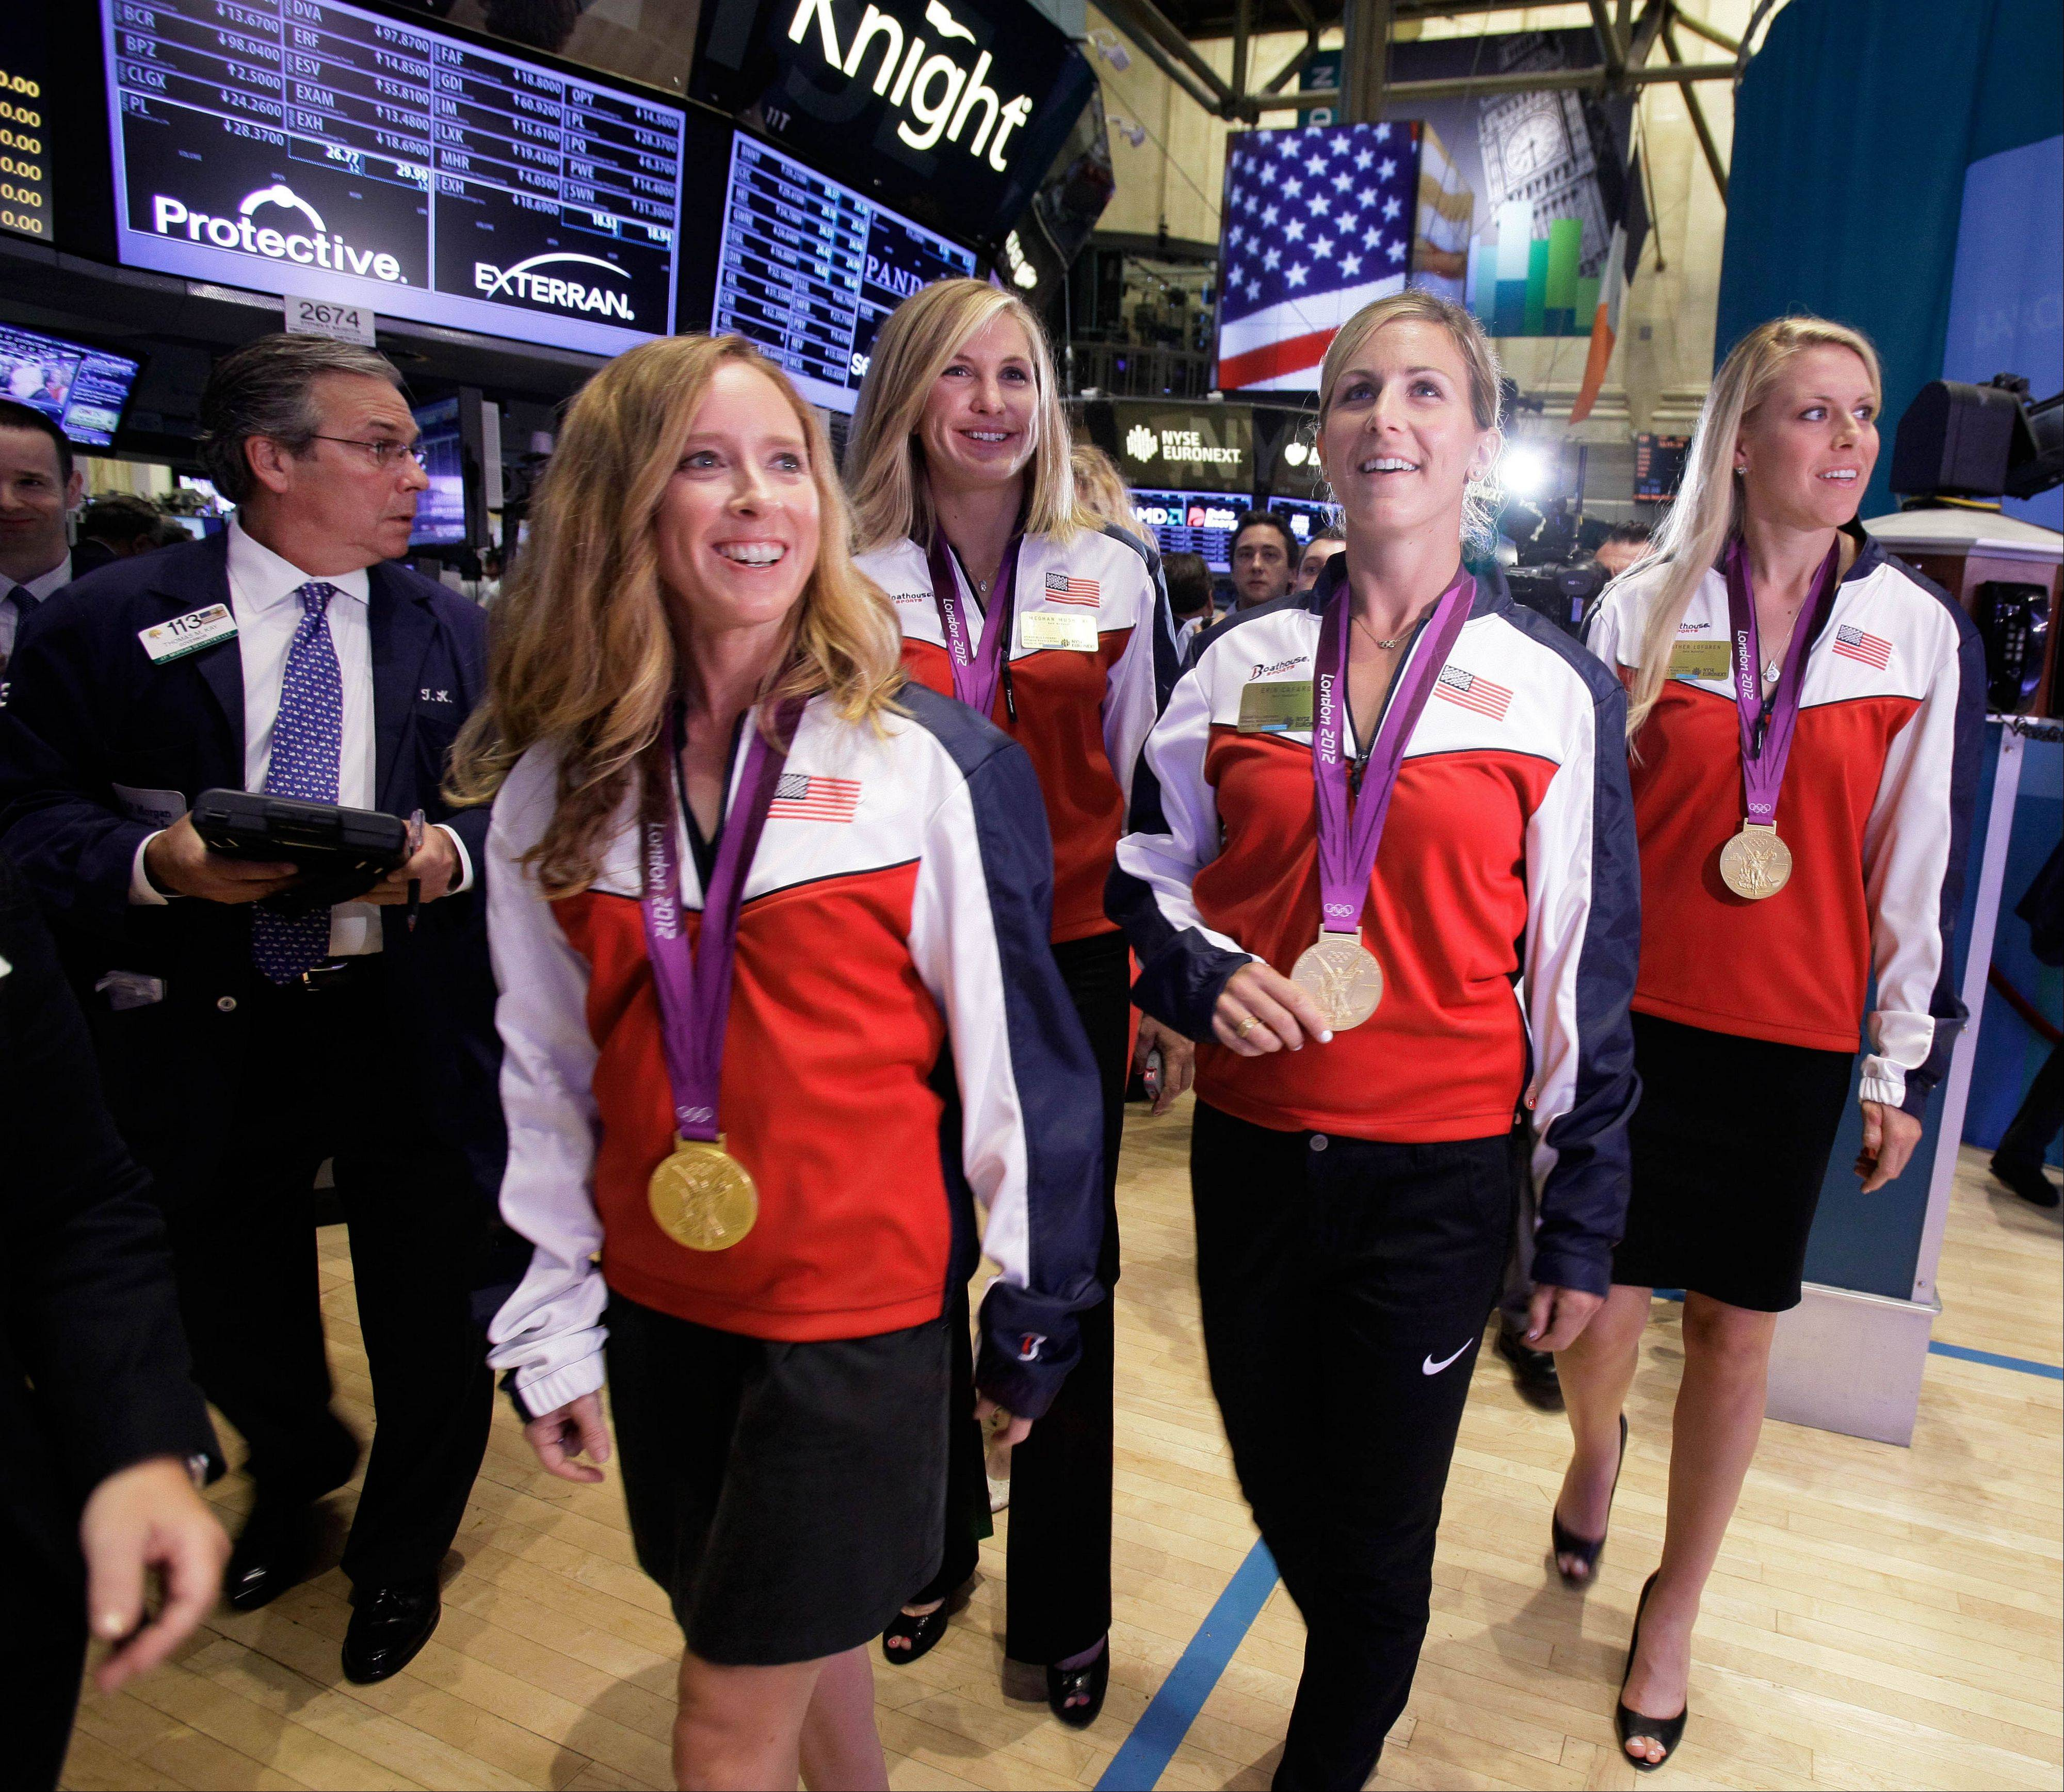 U.S. women's rowing Olympic gold medalists, from left: Mary Whipple, Meghan Mushnicki, Erin Cafaro, and Esther Lofgren, visit the trading floor of the New York Stock Exchange Wednesday before ringing the opening bell.